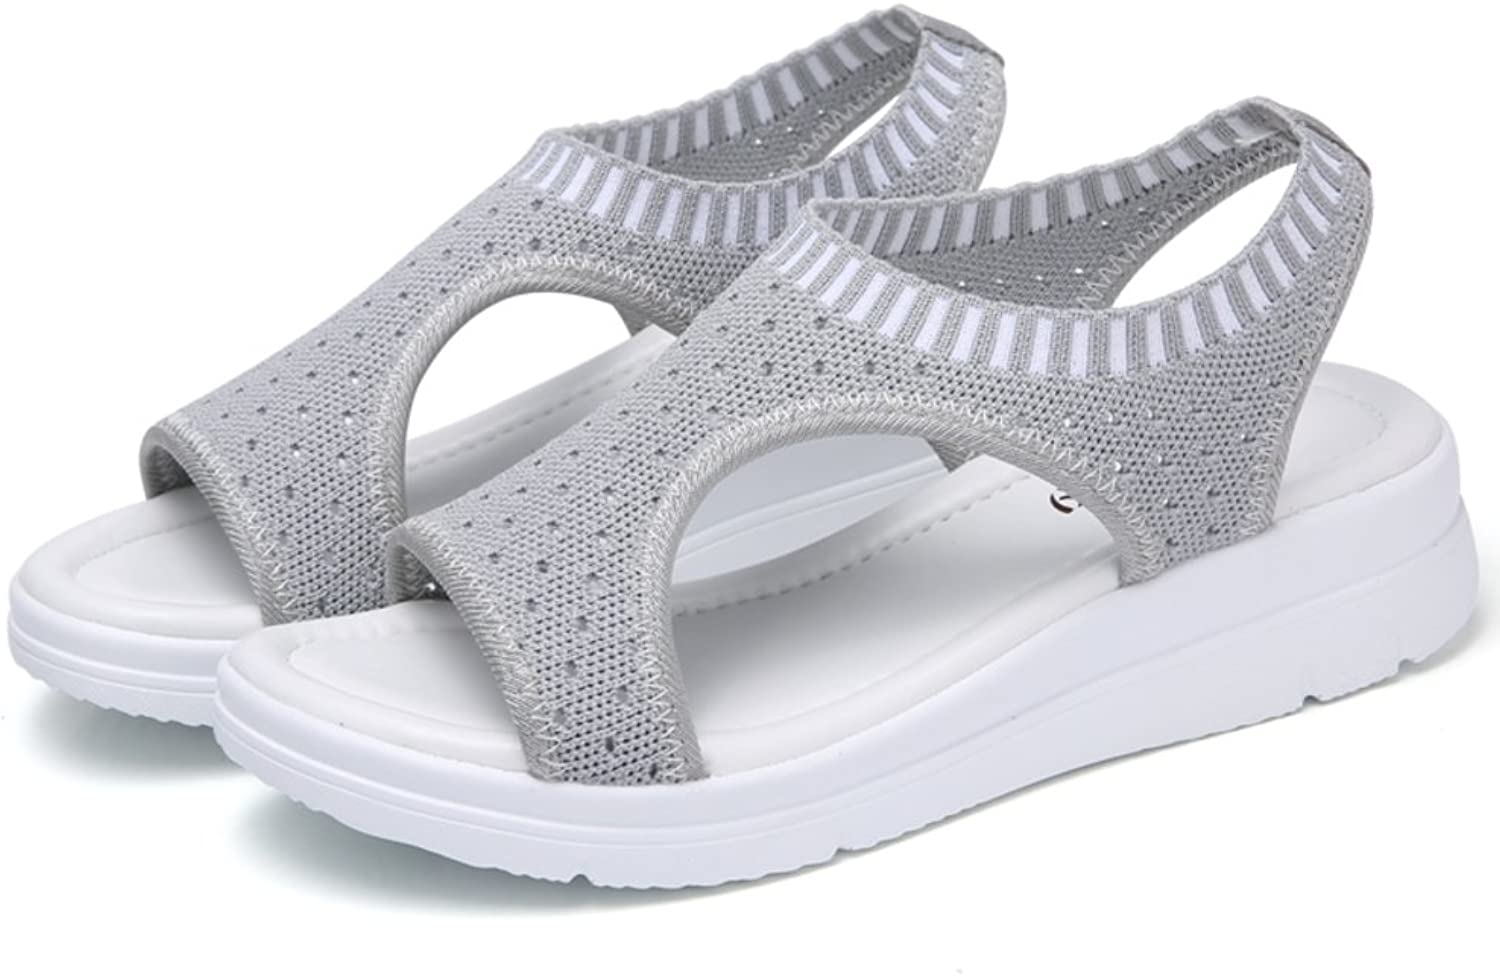 MET RXL Summer,Lady,Breathable,Mesh shoes Flat,Casual Sandals